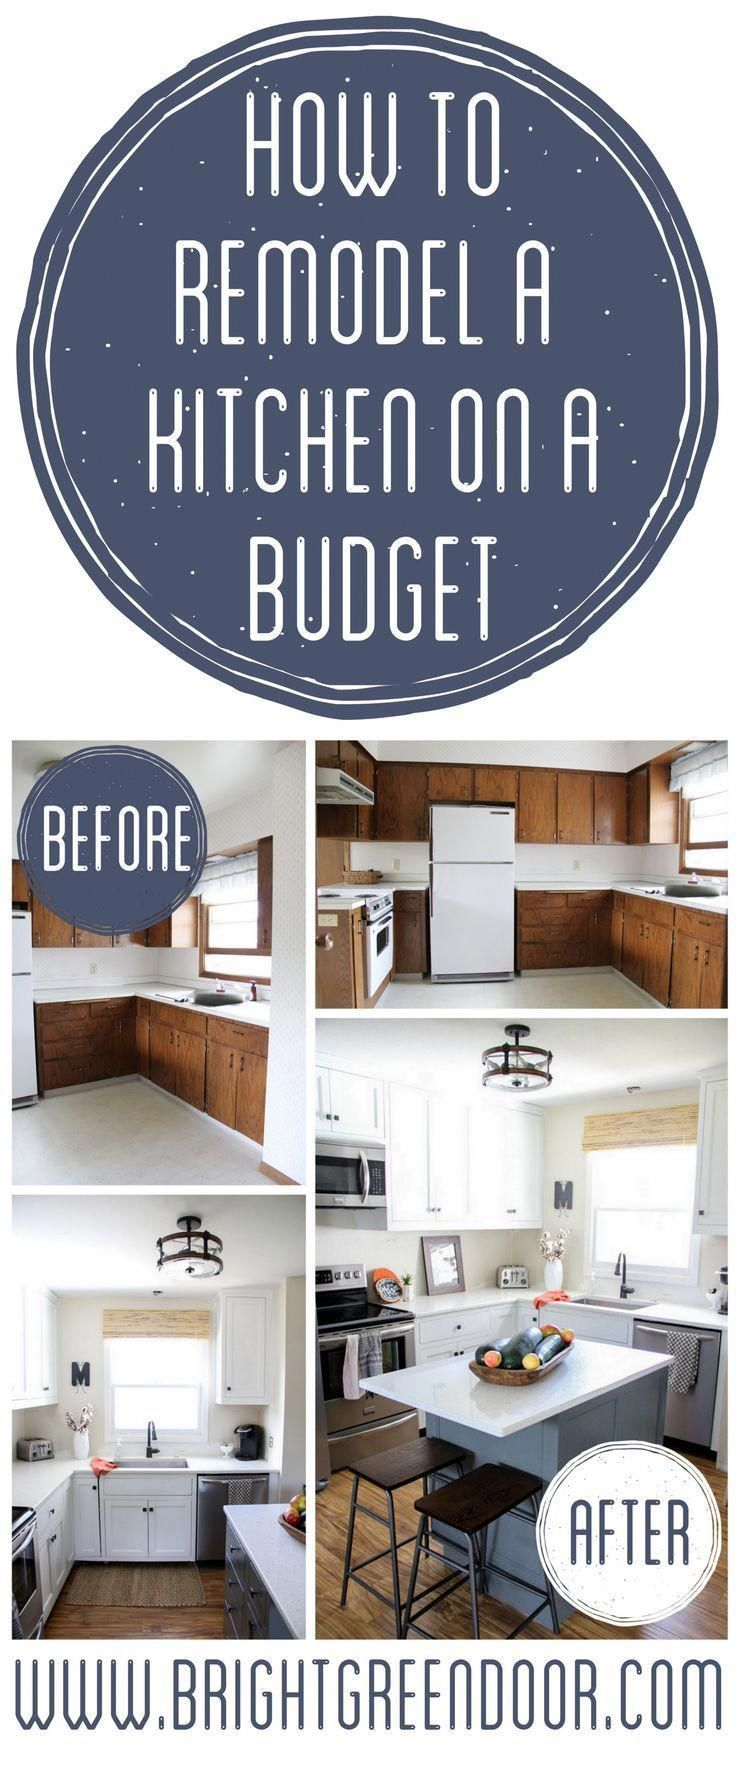 kitchen remodel on a budget appartmentdecoration appartment